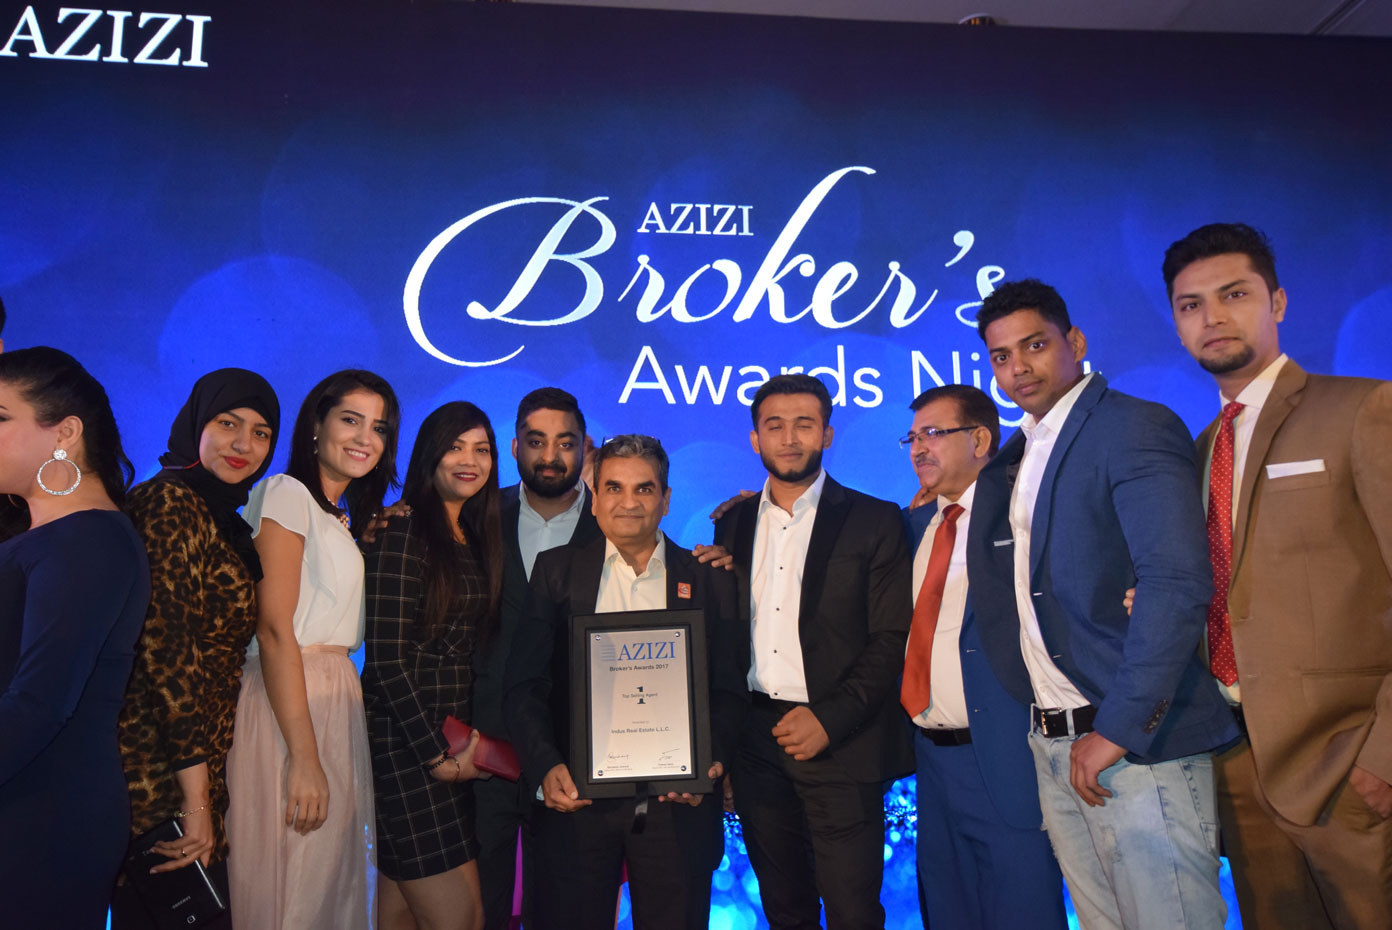 main image Azizi Award , Special Achievement for best brokers